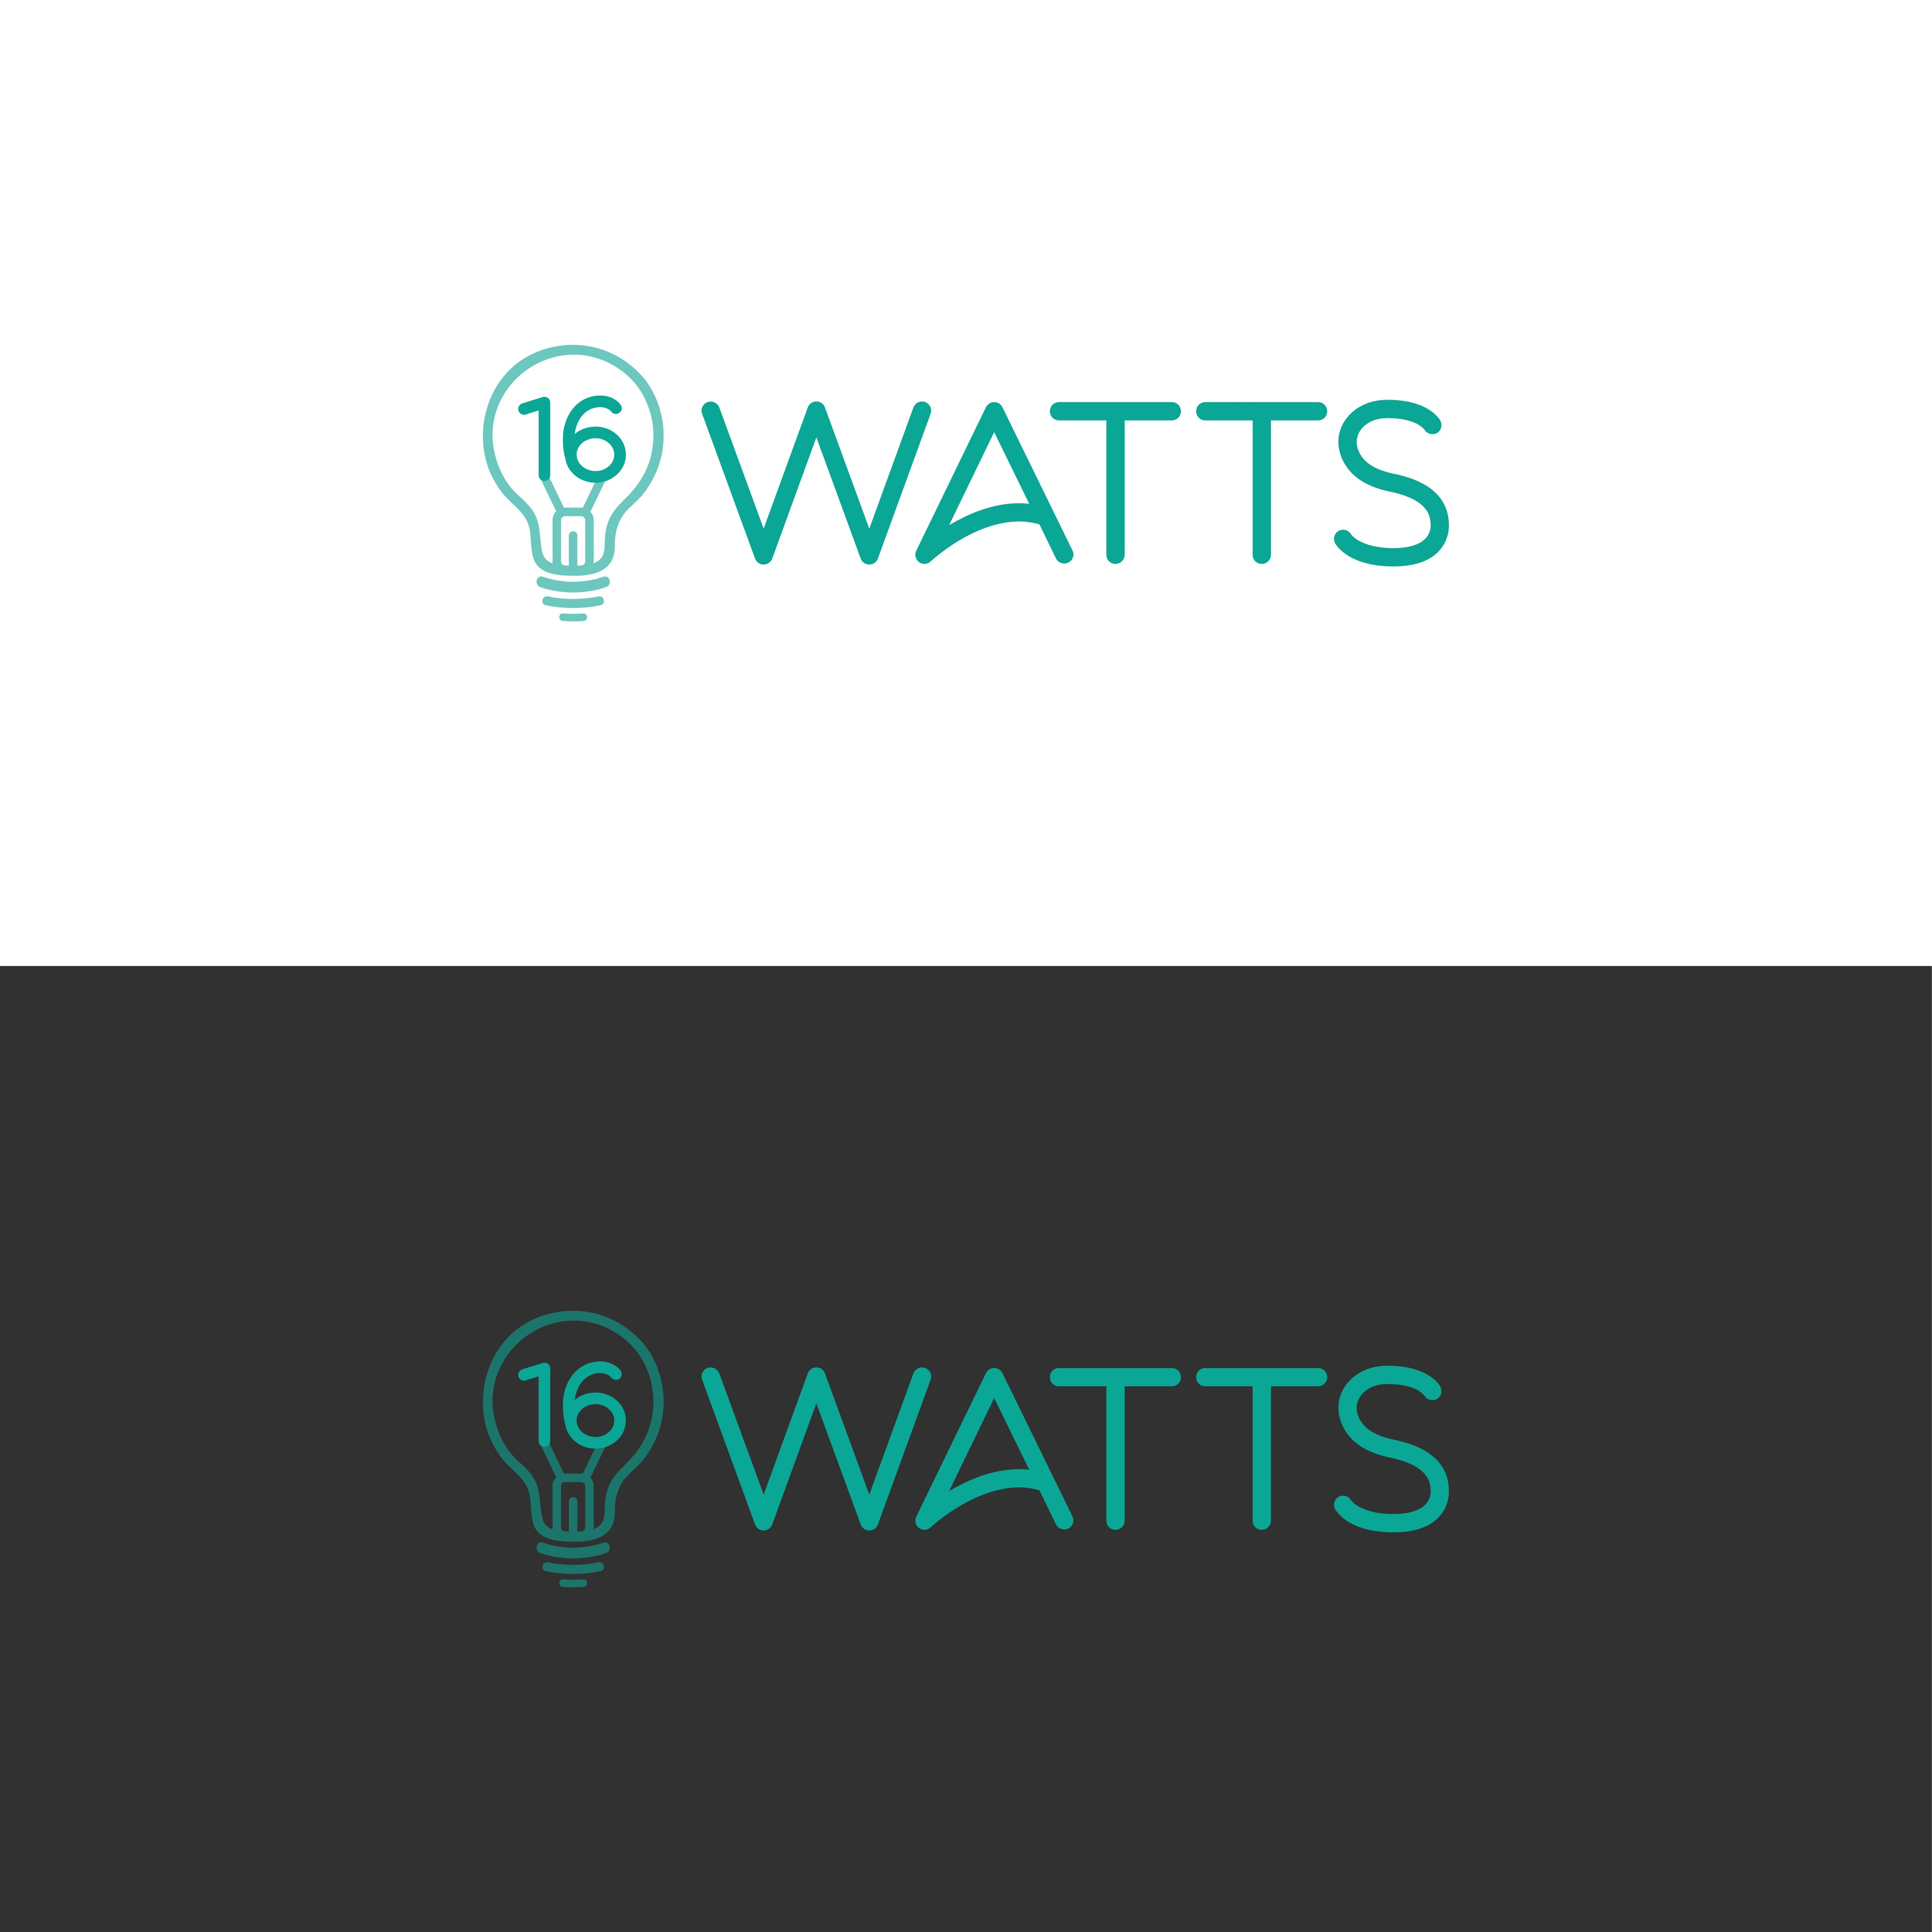 Blend antique tech and modern software in a logo and website for 16 Watts